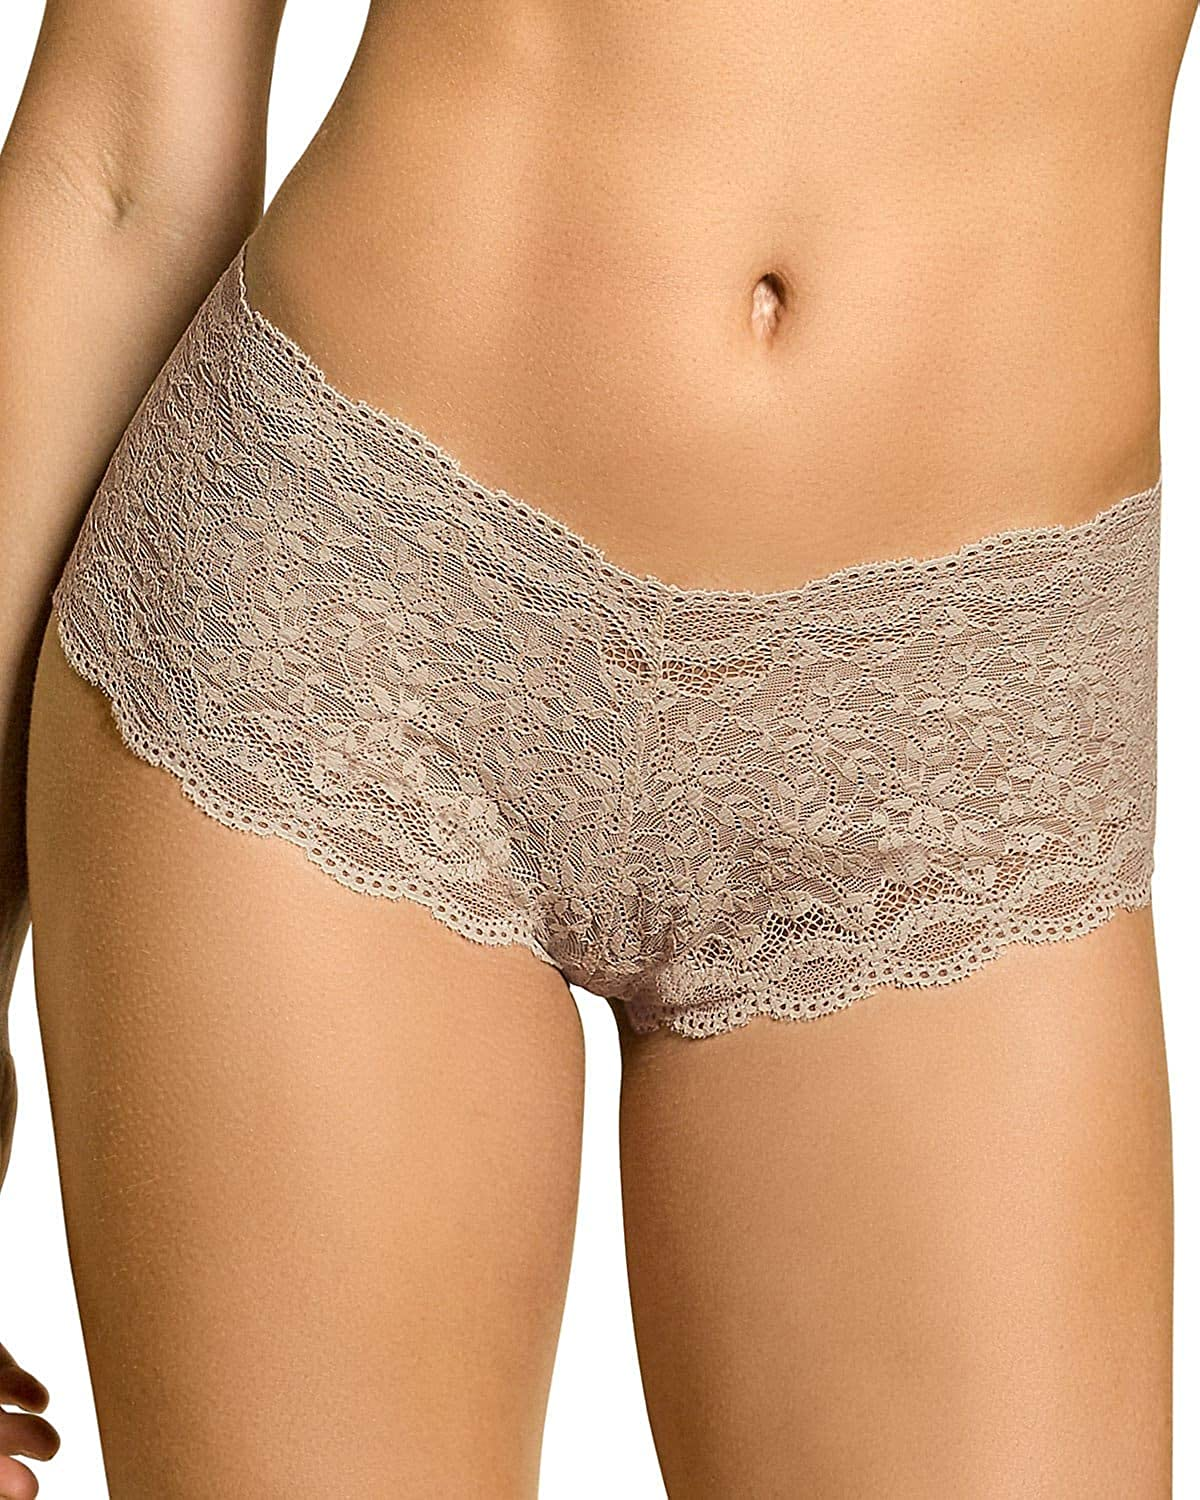 Hiphugger Style Panty in Modern Lace